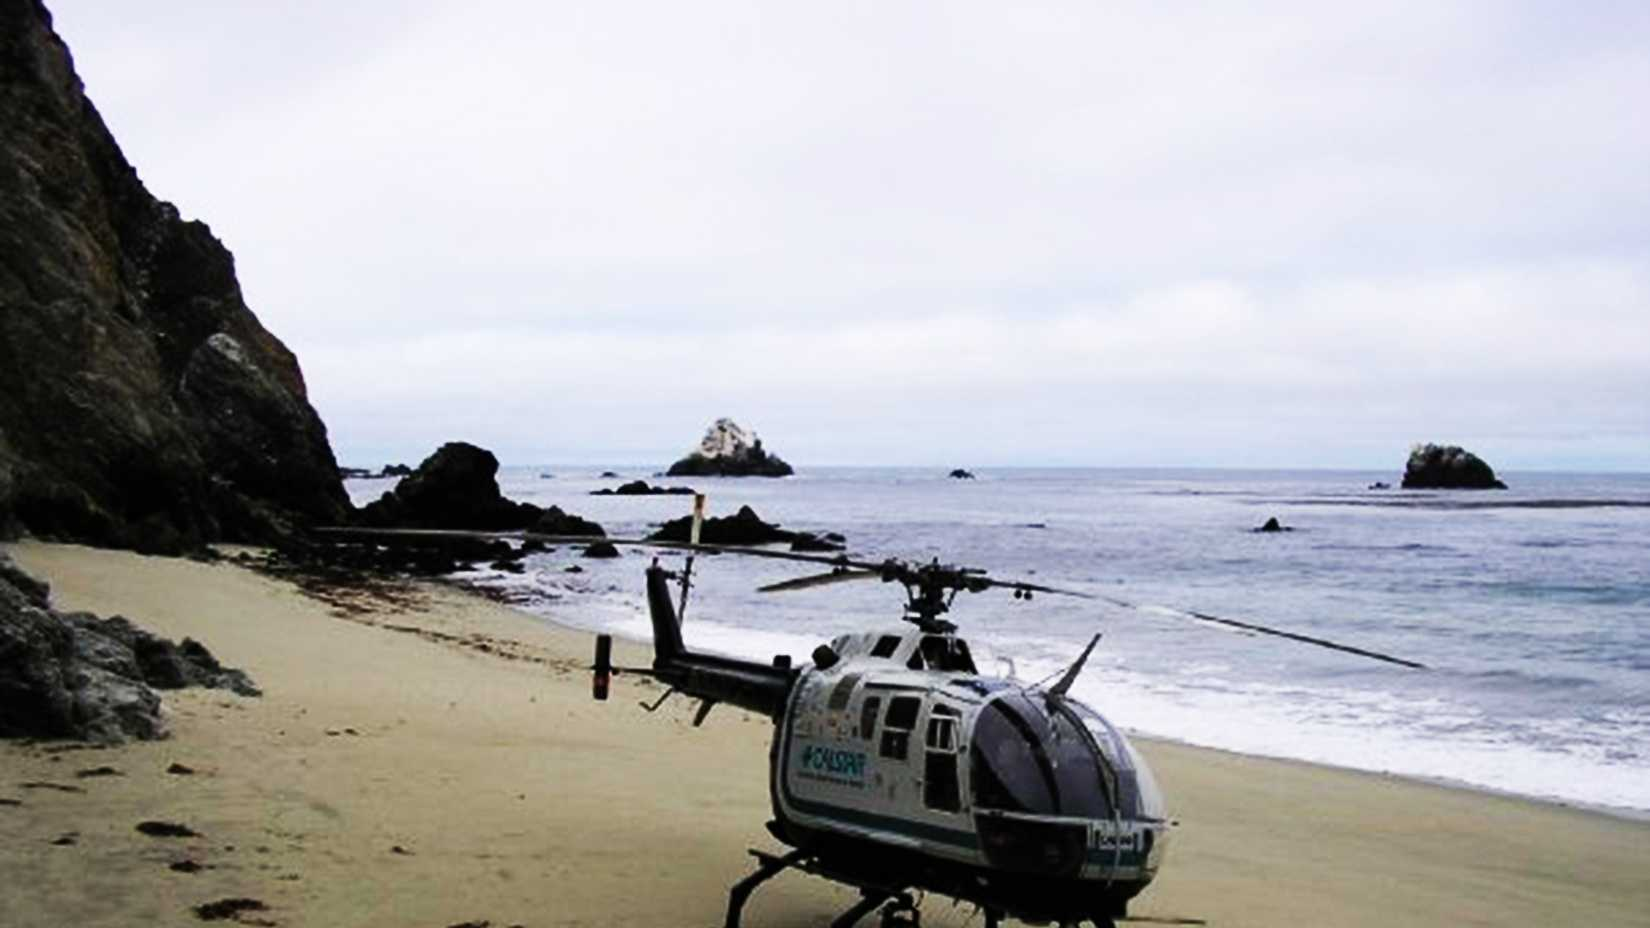 This CalStar helicopter had to land on a Big Sur beach under the Bixby Bridge.